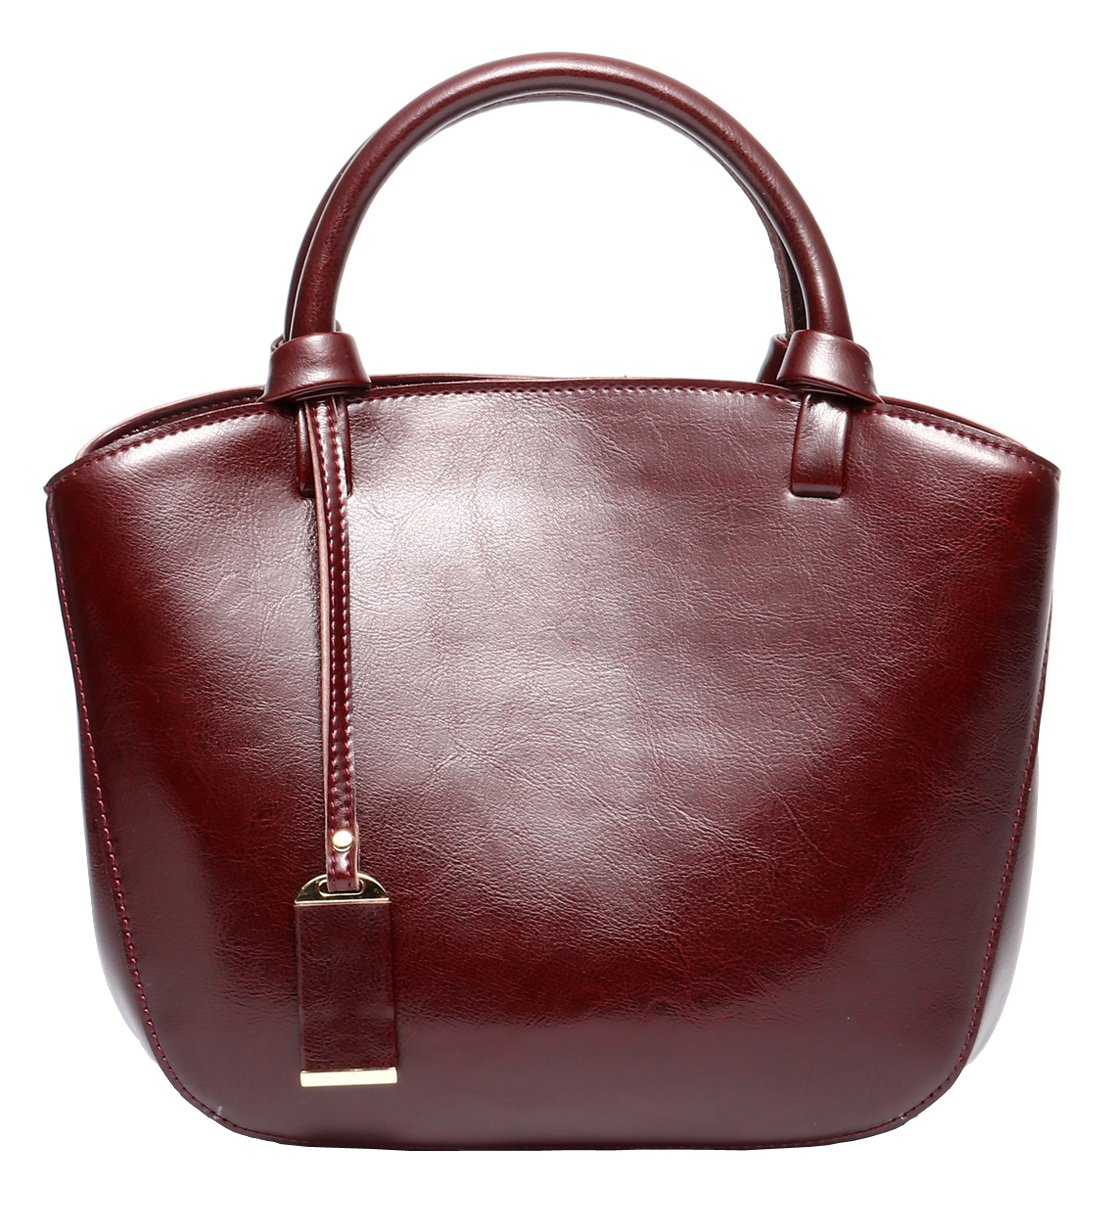 Covelin Genuine Leather Handbag Womens Retro Middle Size Tote Shoulder Bag Wine Red by Covelin